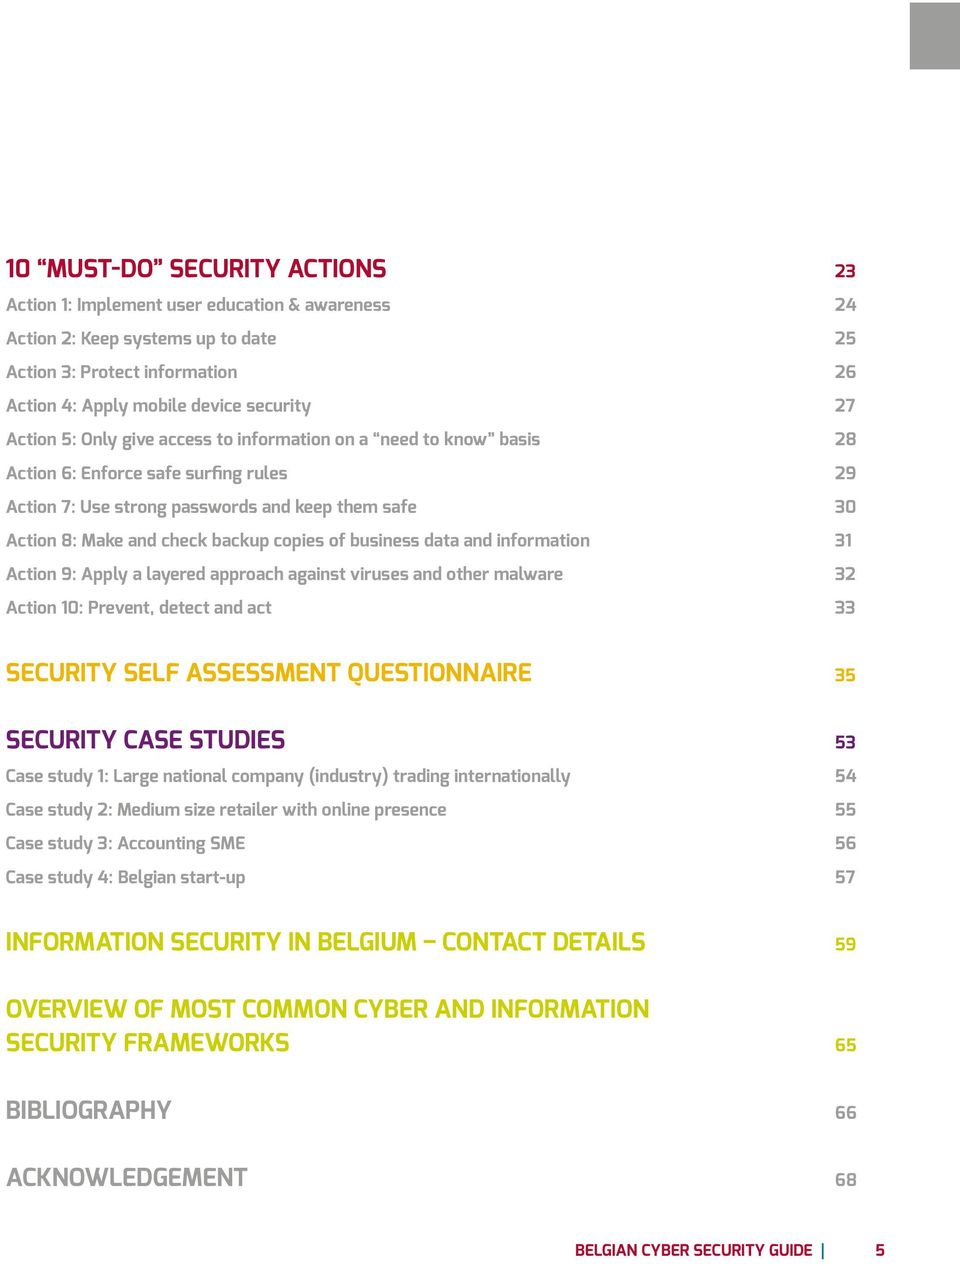 business data and information 31 Action 9: Apply a layered approach against viruses and other malware 32 Action 10: Prevent, detect and act 33 Security self assessment questionnaire 35 Security Case